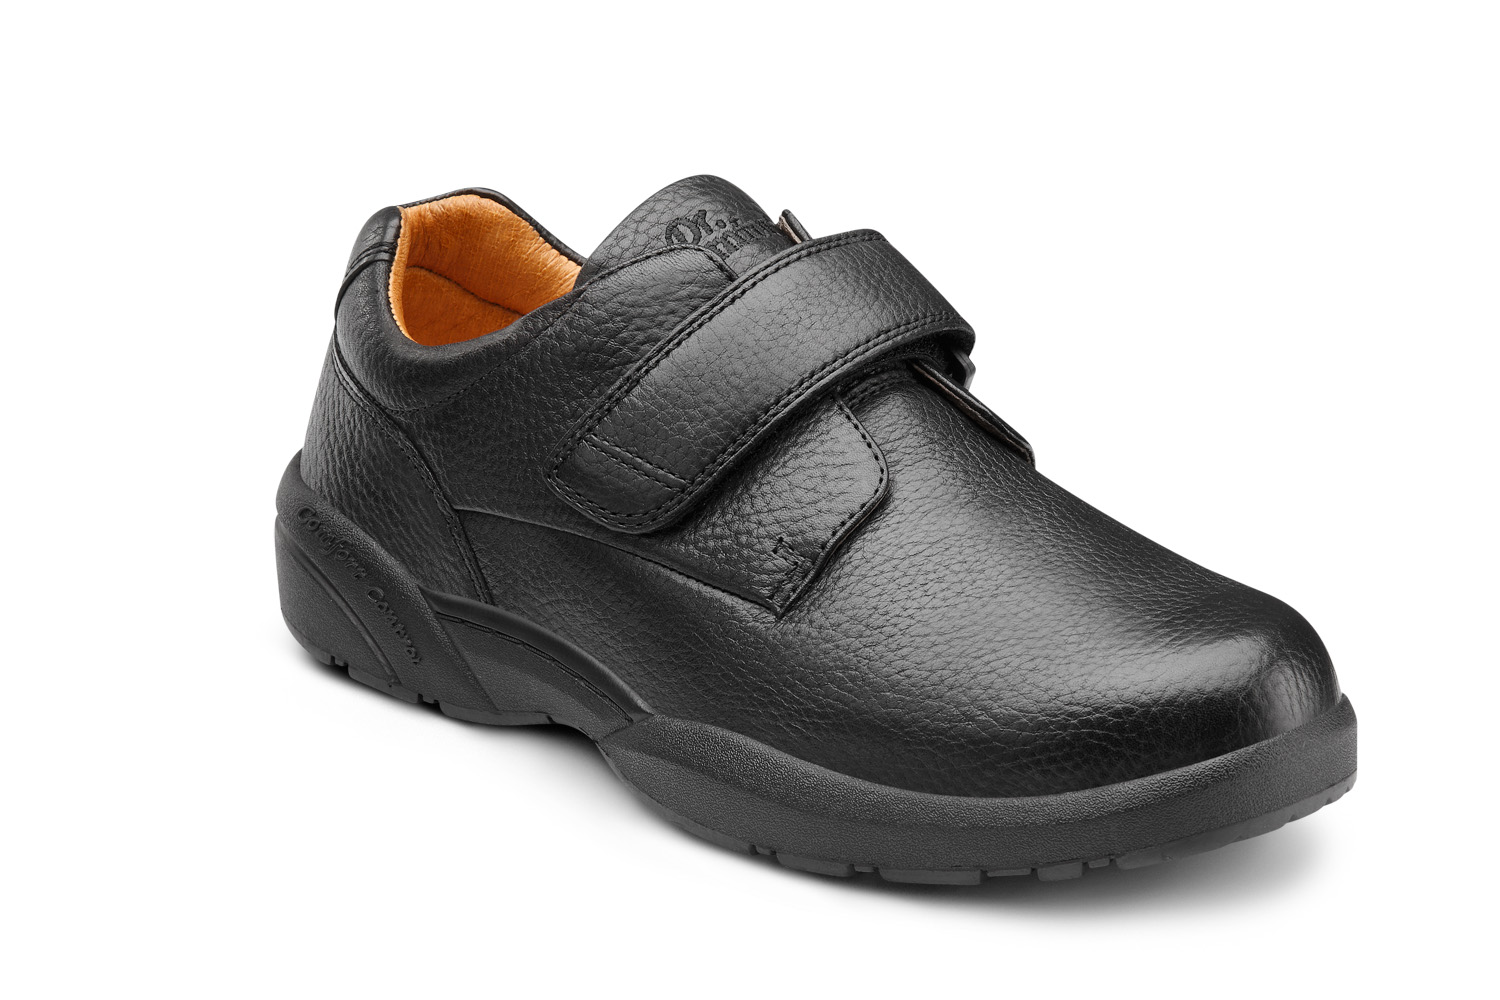 Mens Work Shoes Near Me